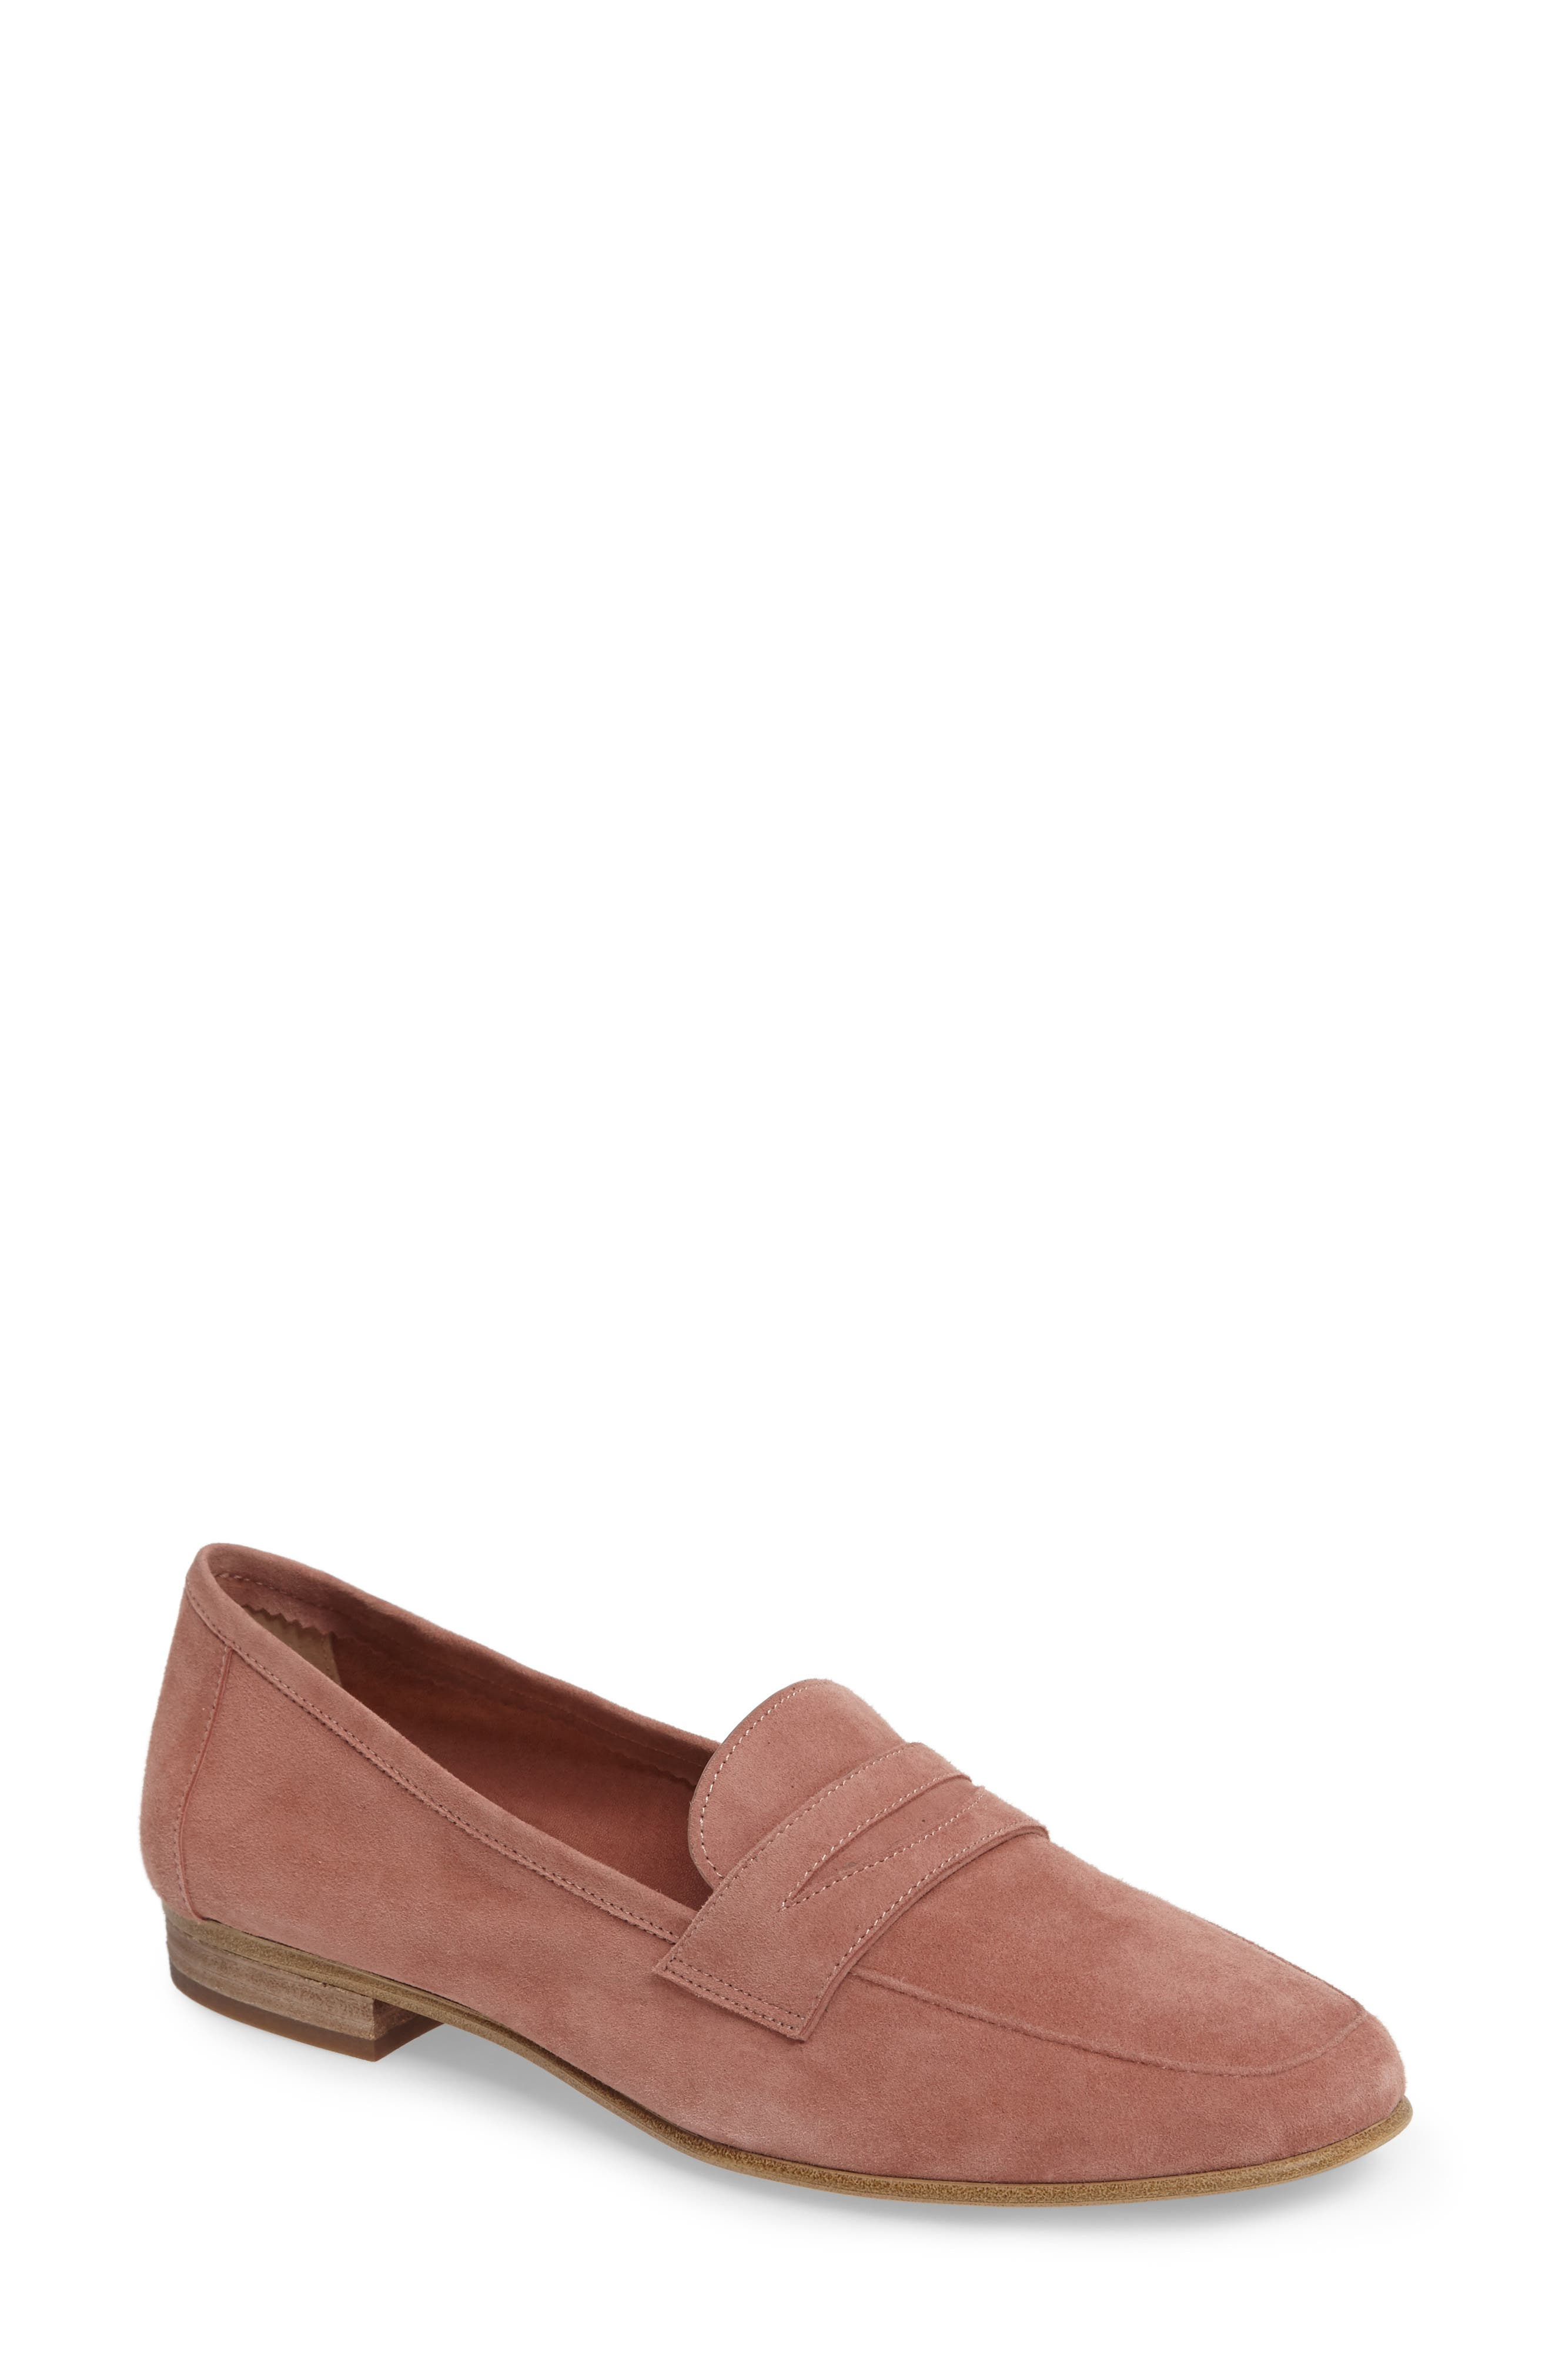 Alternate Image 1 Selected - Vince Camuto Elroy Penny Loafer (Women)